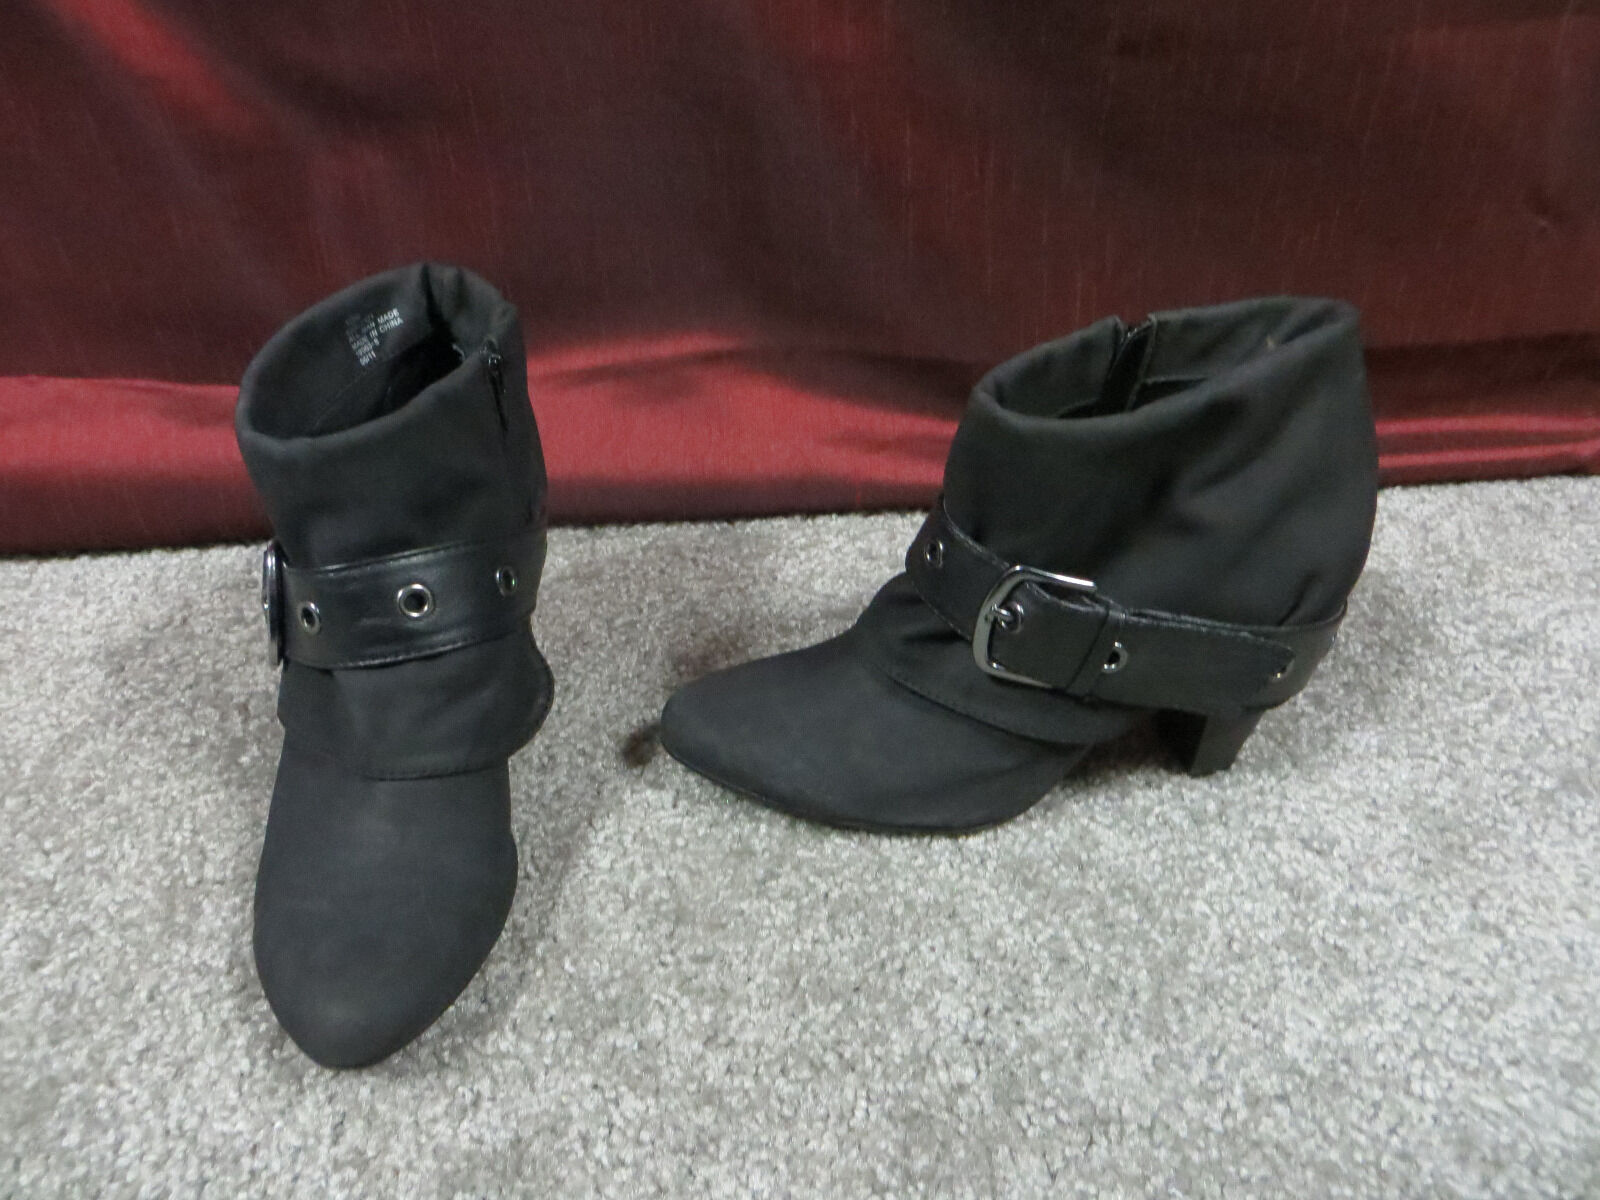 Decree Charcoal Gray Fabric Fashion Ankle Booties w/Strap & Buckle Accent, 10M